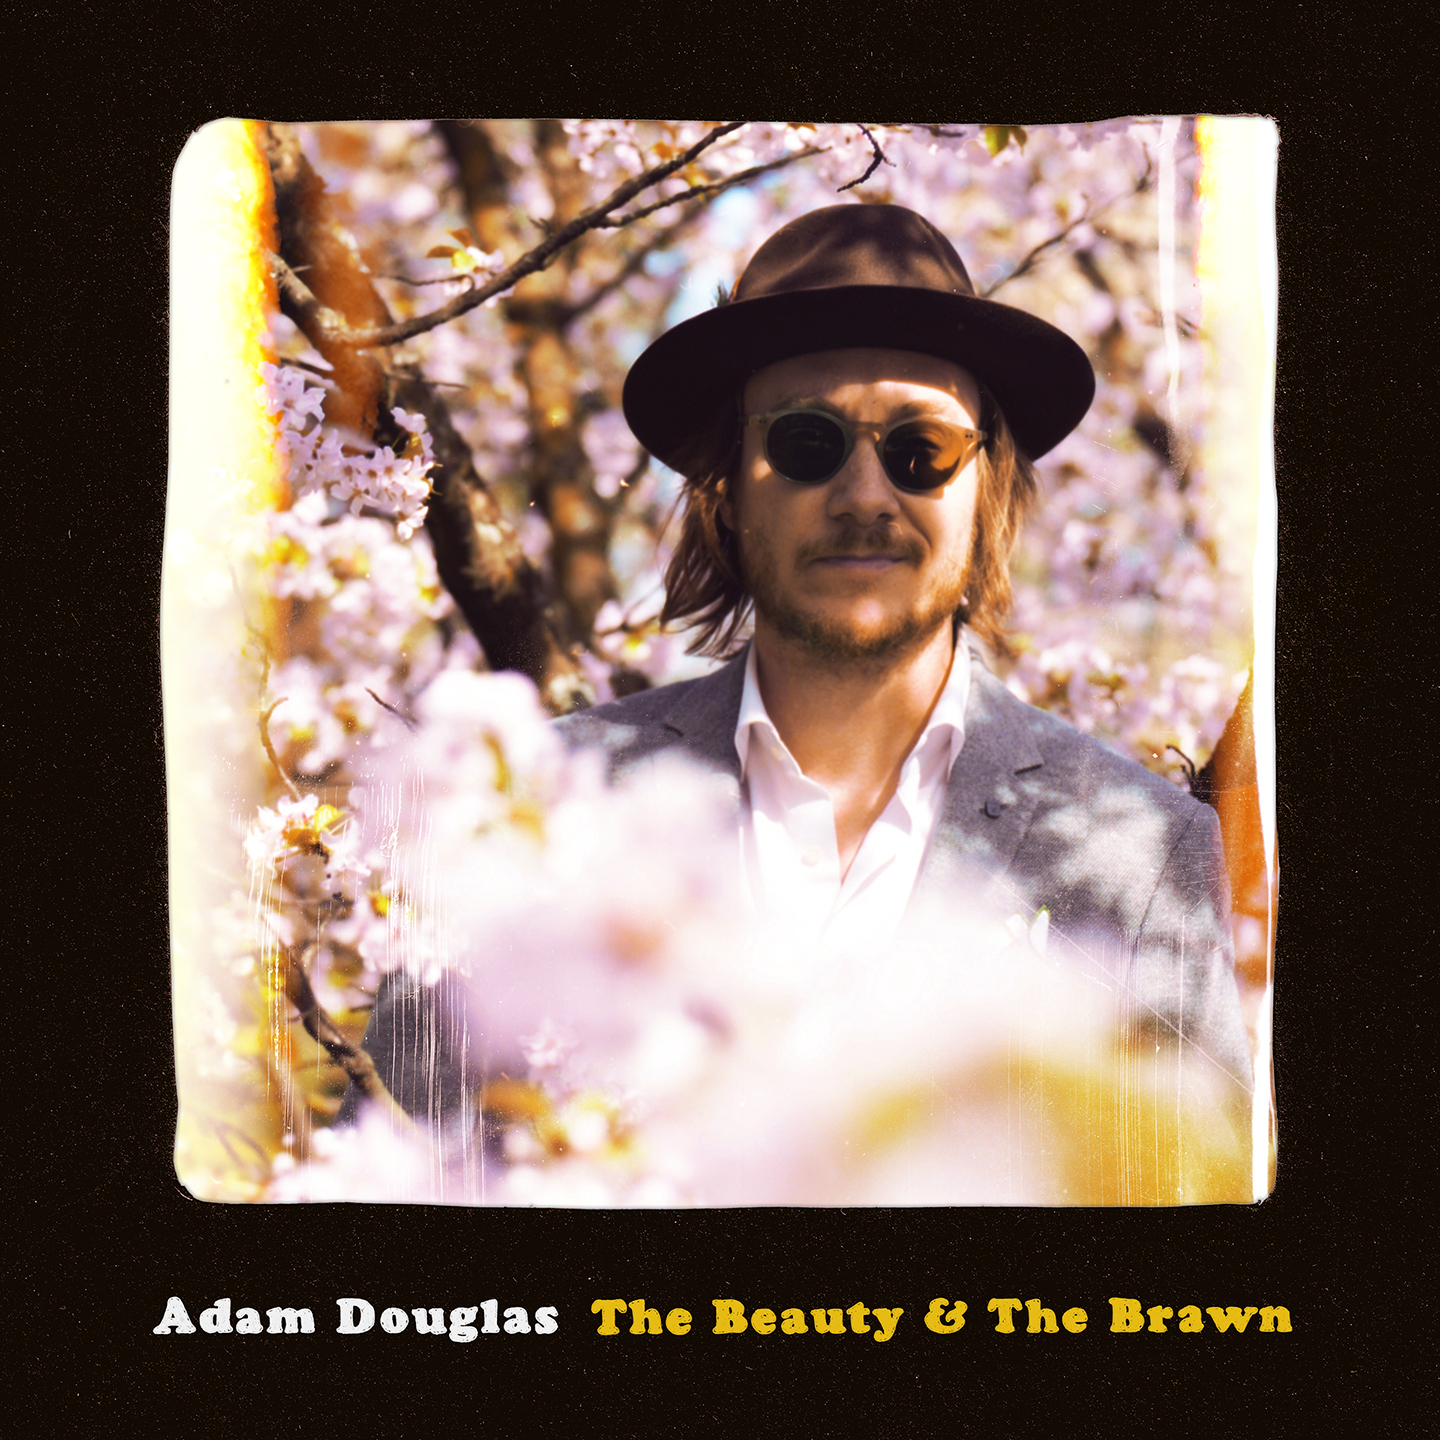 "- Press Release - New album from Adam Douglas «The Beauty & the Brawn» Adam Douglas, with an already impressive discography - appearing on more than a dozen releases - is pleased to announce that his 2nd full-length solo album «The Beauty & The Brawn"" will finally be out September 7th.- It's always a bit nerve-racking when preparing to release new material. A healthy blend of nervousness, excitement and pride. Perhaps especially this time, with such personal material, Adam says.The American artist, living in Norway, has loved music and the life on stage since he was a young boy, and with his magnificent voice and honest and revealing songs, it seems like both the music and the audience love him back.  Adam has been a household name among blues fans for a long time, but was fully discovered by the Norwegian people after beating nine other established artists in a genre-splitting song contest broadcasted on Norwegian television last fall.  The album consists of 10 songs written and developed by Adam himself. The inspiration is derived from his American roots, where you can trace several genres from country and gospel to blues and rock n' roll. The album was recorded predominately live in the studio and direct to analog tape, with focus on capturing Adam`s outstanding voice and his distinctive soundscape. - This time around, going full analog was exactly what the doctor ordered. For the atmosphere we were hunting for, direct to tape was the only way to go. The perfection is very much in the imperfection. The tape process also provides an added warmth to the overall recording, and I was very after the warmth, Adam says. And with some help from the legendary producer and studio musician, Geir Sundstøl, and other talented musicians, the album ended up as a piece of art. - I am quite happy with the project as a whole. It's far from perfect, and that's what I love about it. The past year of my life has been a complete roller coaster, and very much in the public eye. Therefore, it was very important for me to create a recording that was very honest and revealing. Many people may not get it. Many people may not like it. But for better or worse, it is very Adam, he concludes.In addition to making a new album, he has performed more than 60 concerts on big stages throughout the entire year. In July, he had the honor of performing for over 10,000 people at Kongsberg Jazz Festival - as support for world-renowned artist Sting, and later as support for Bonnie Raitt at Olavsfestdagene in Trondheim.For more information, please contact label & management Compro Artists:Jon F. Leiulfsrudjon@compro.no+47 91 90 80 70"